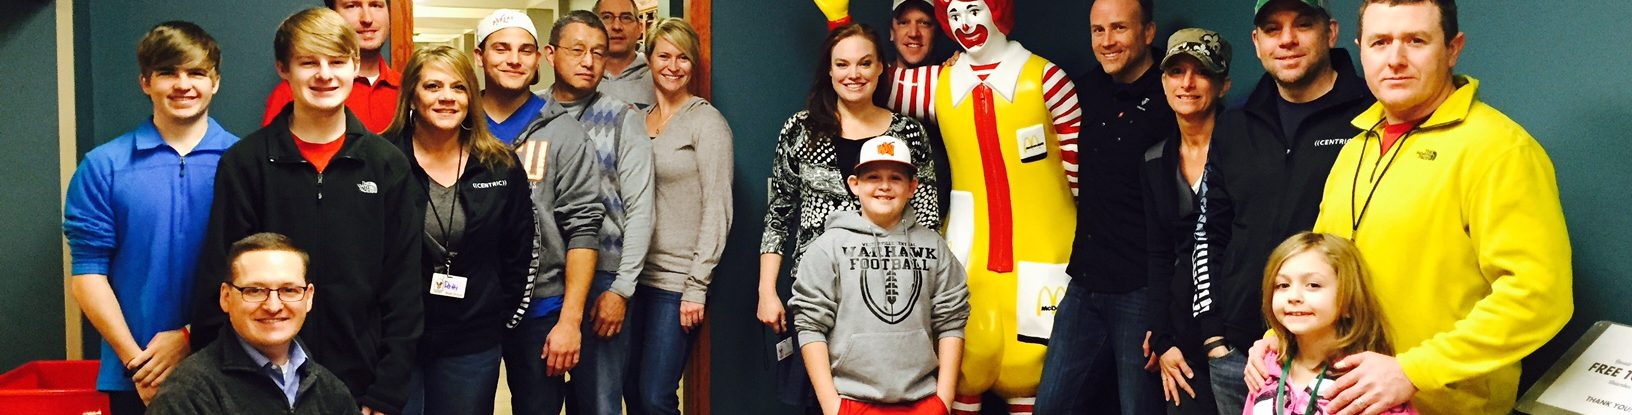 centric columbus volunteers with ronald mcdonald house